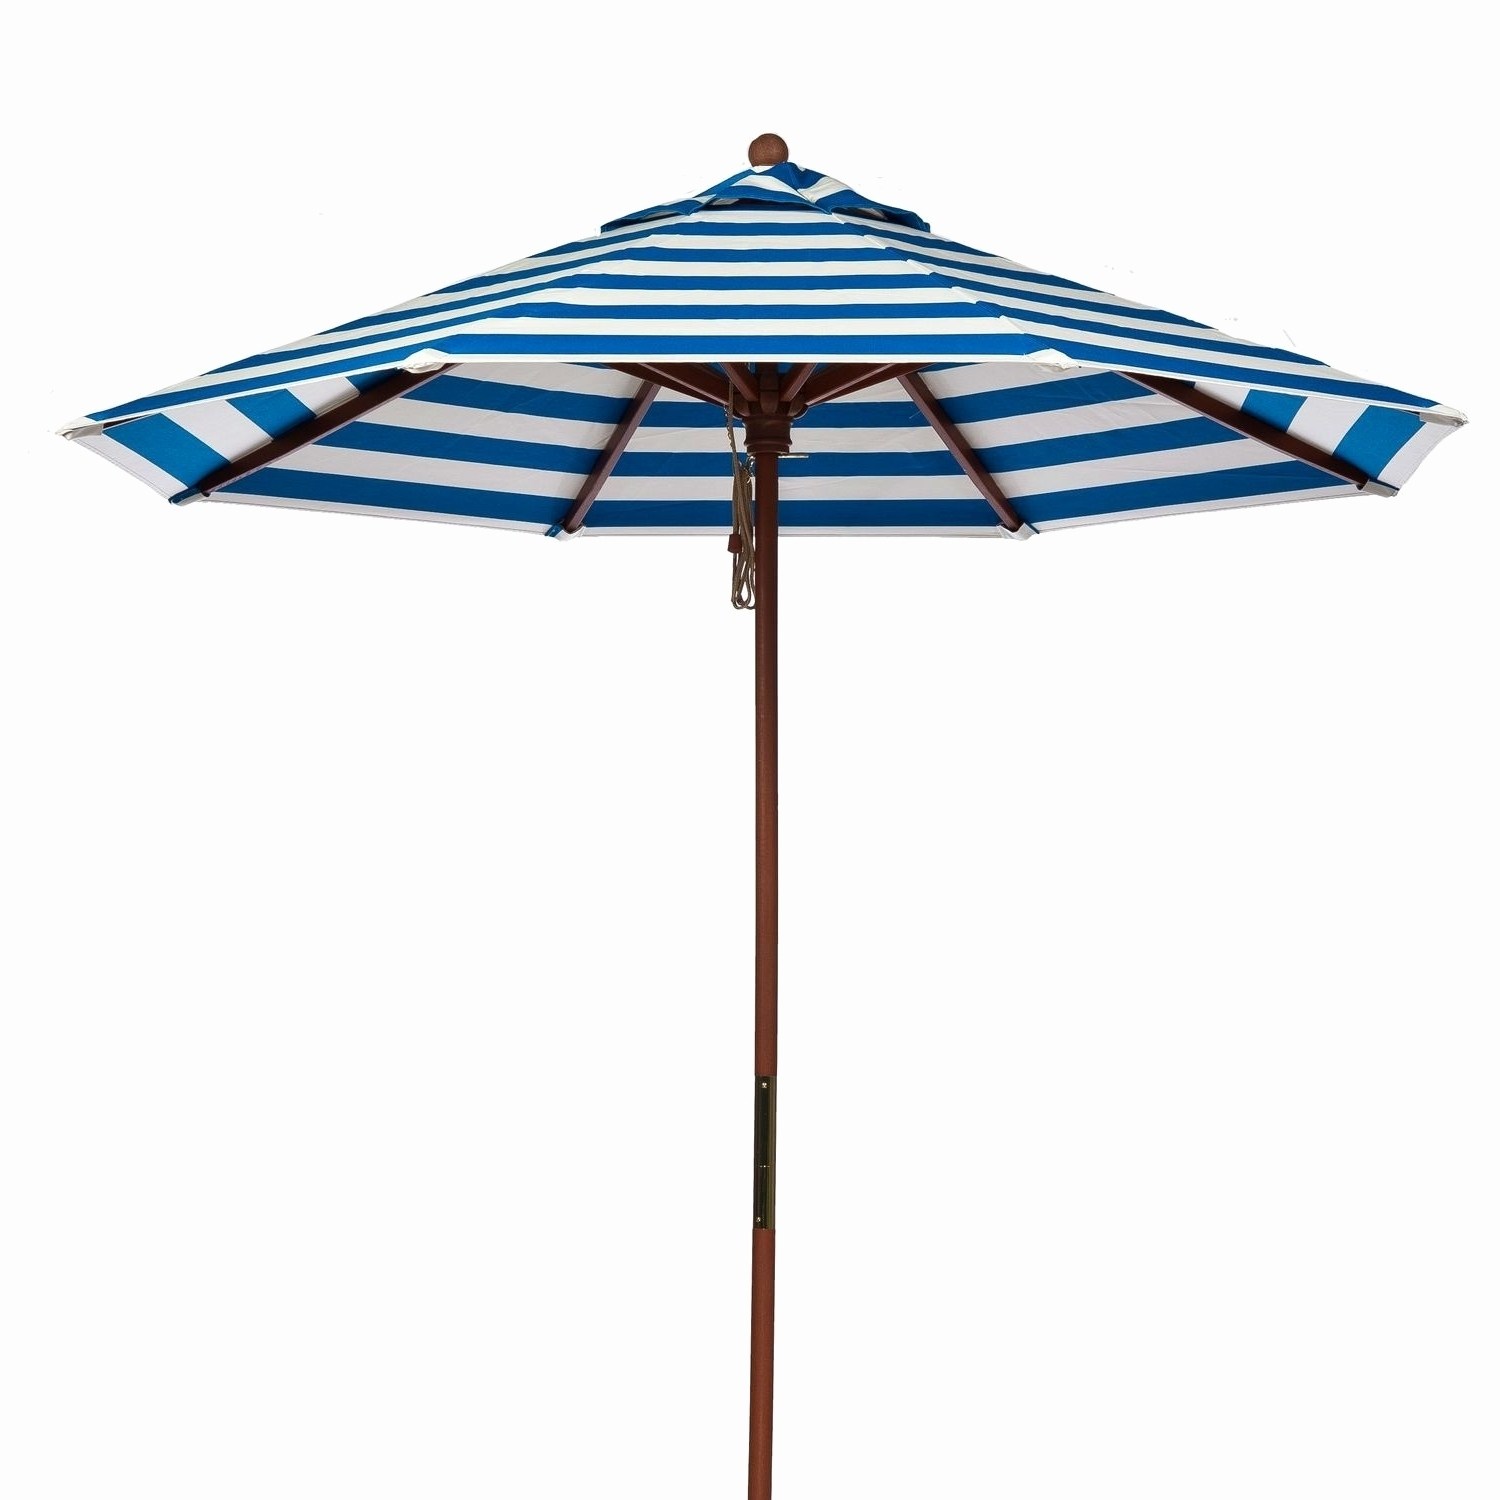 2019 Patio Umbrellas With White Pole With Navy Blue Patio Umbrella With White Pole.unique Navy Blue And White (Gallery 19 of 20)